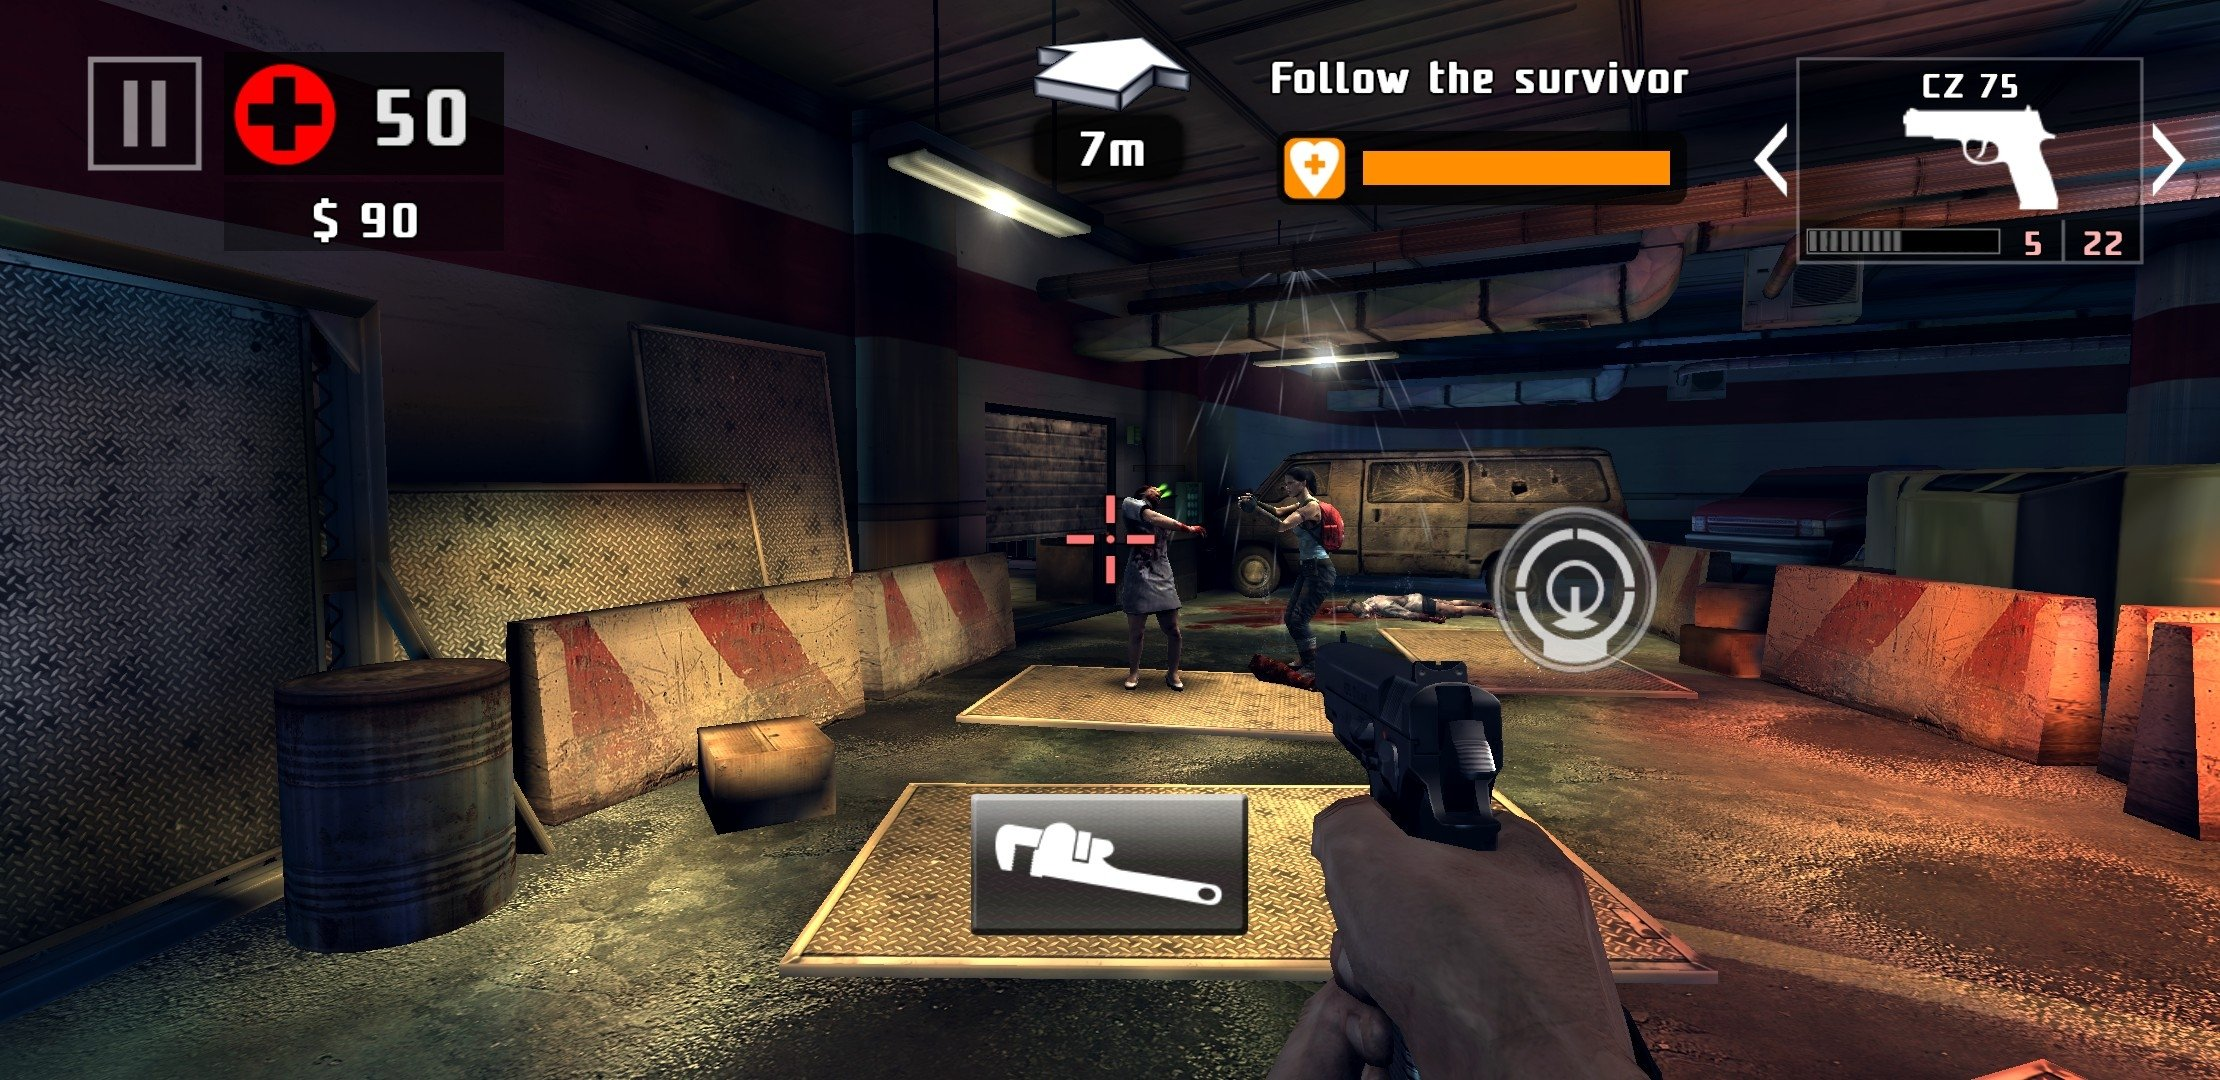 Linux Iphone Wallpaper Dead Trigger 2 1 3 3 Download For Android Apk Free